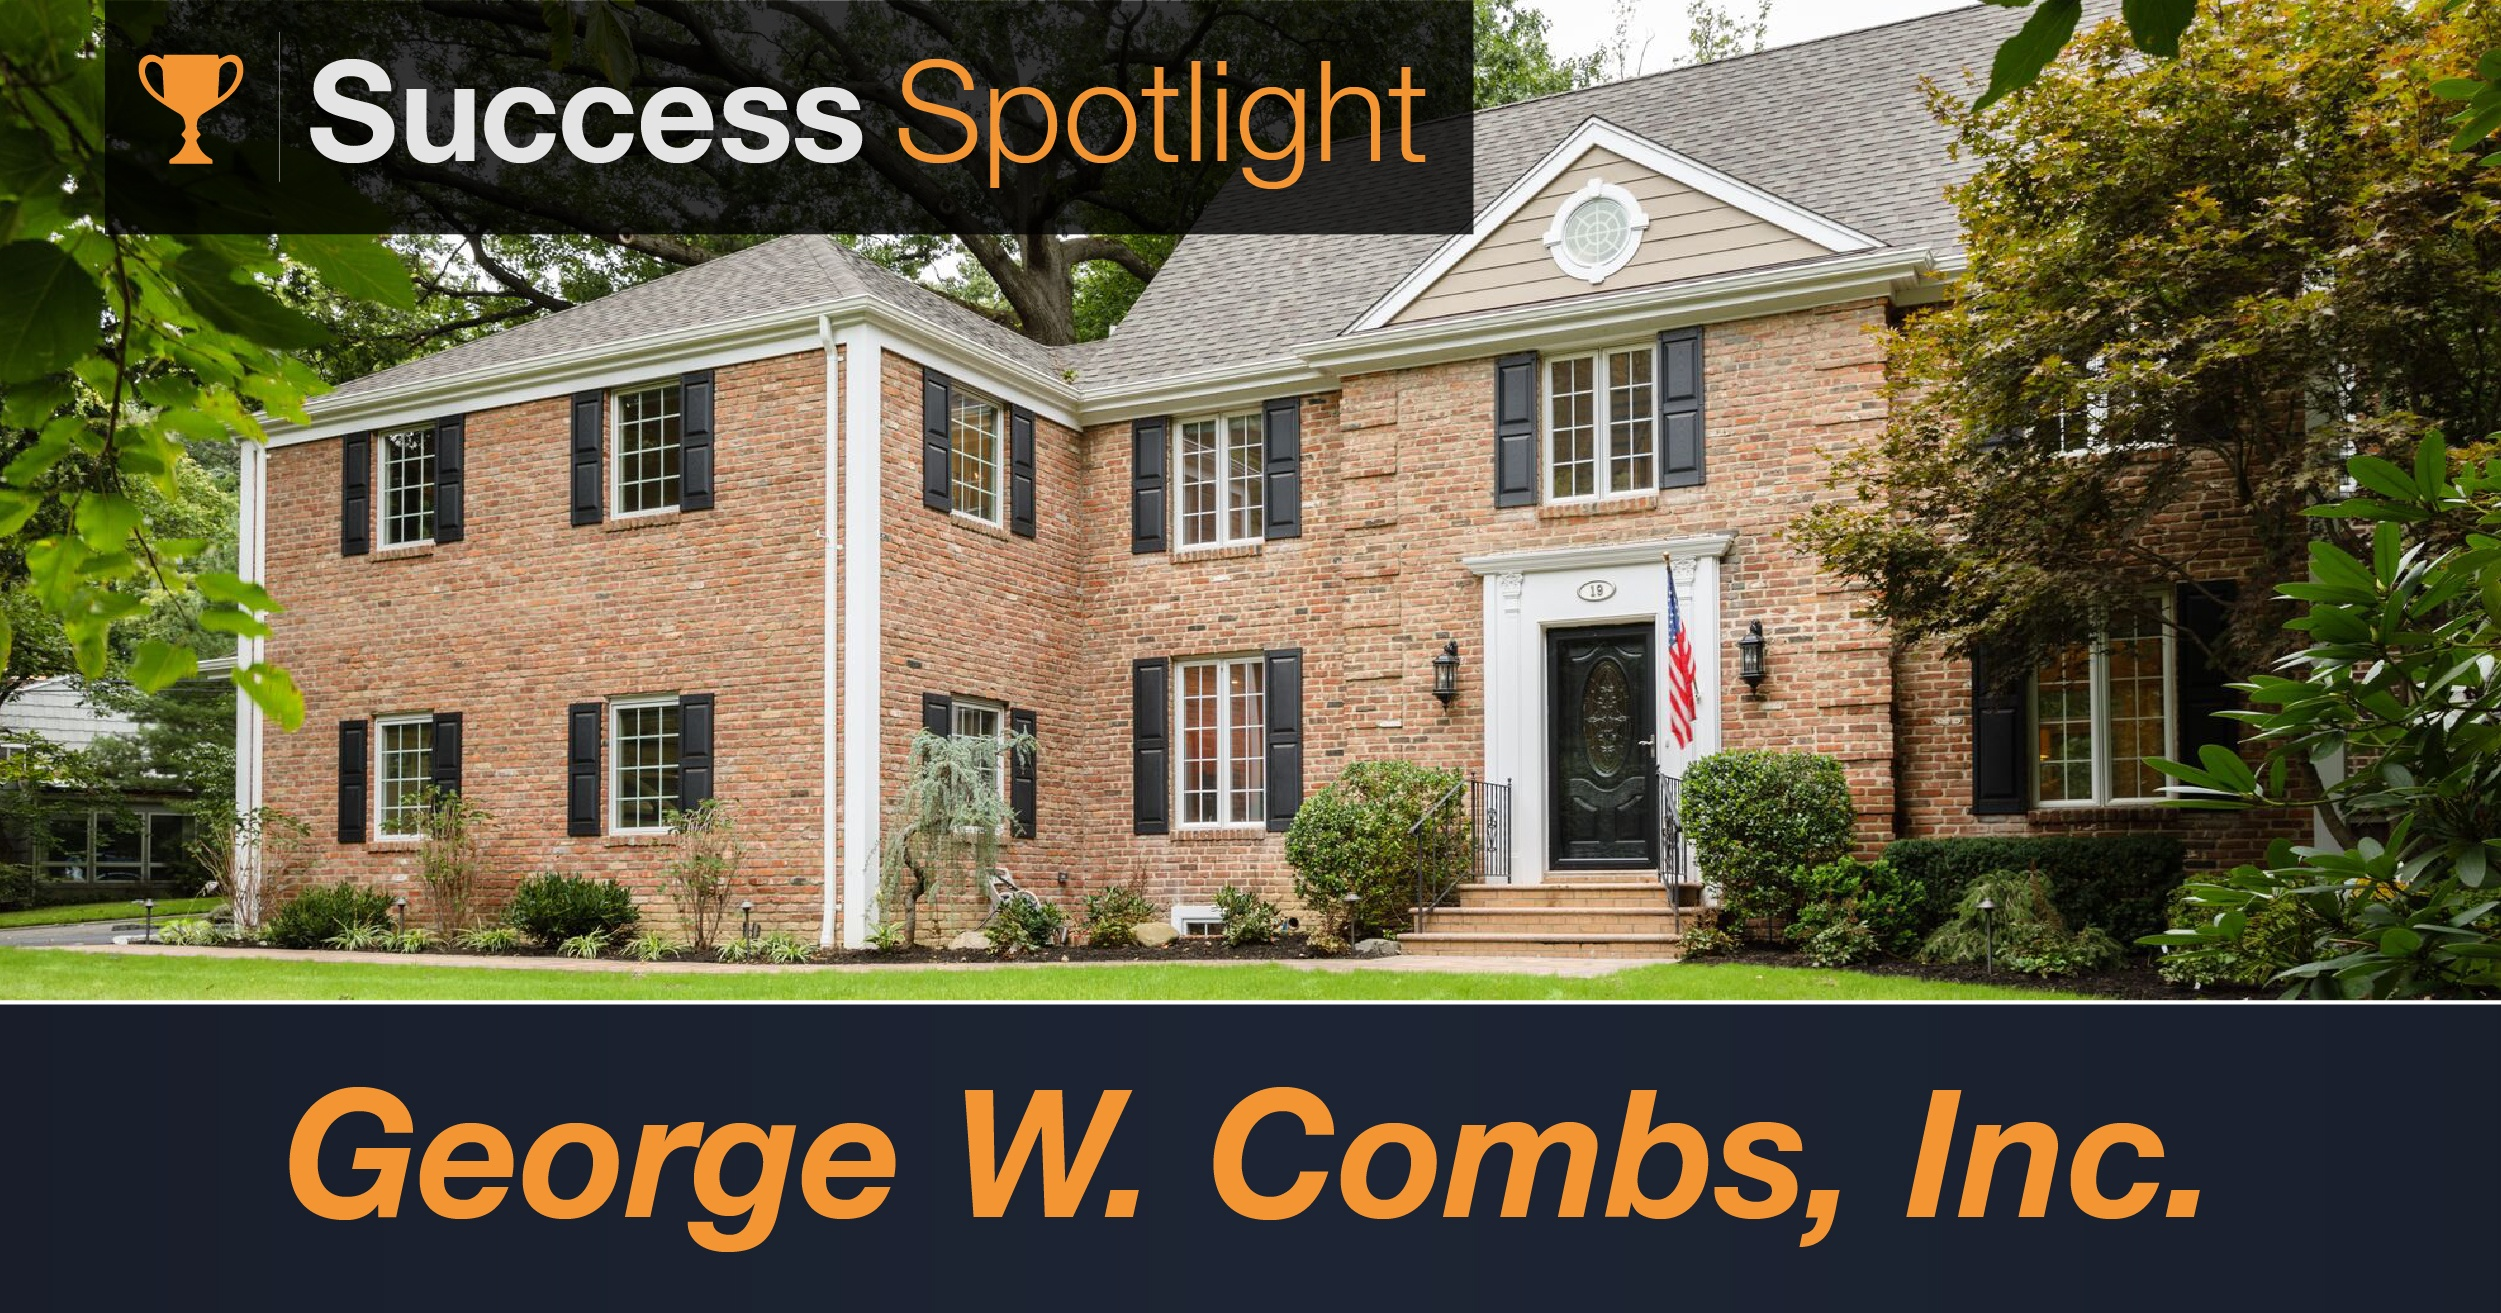 Success Spotlight: George W. Combs, Inc.